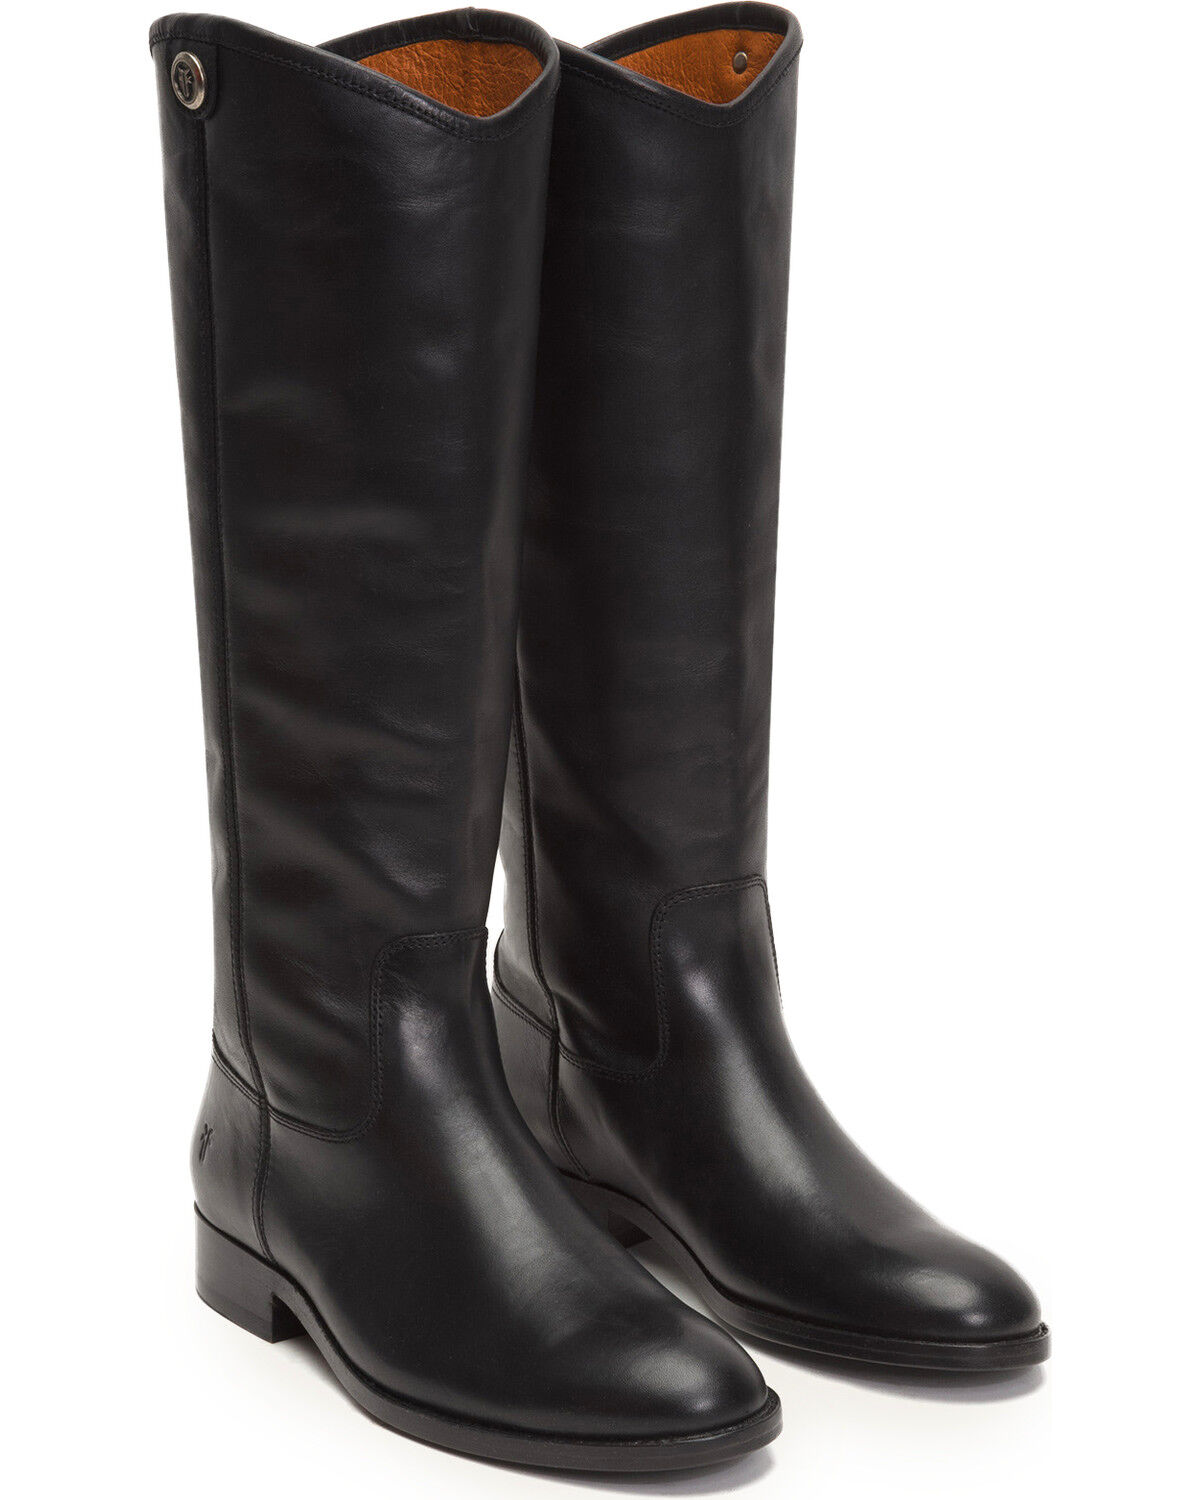 Tall Boots - Round Toe | Boot Barn